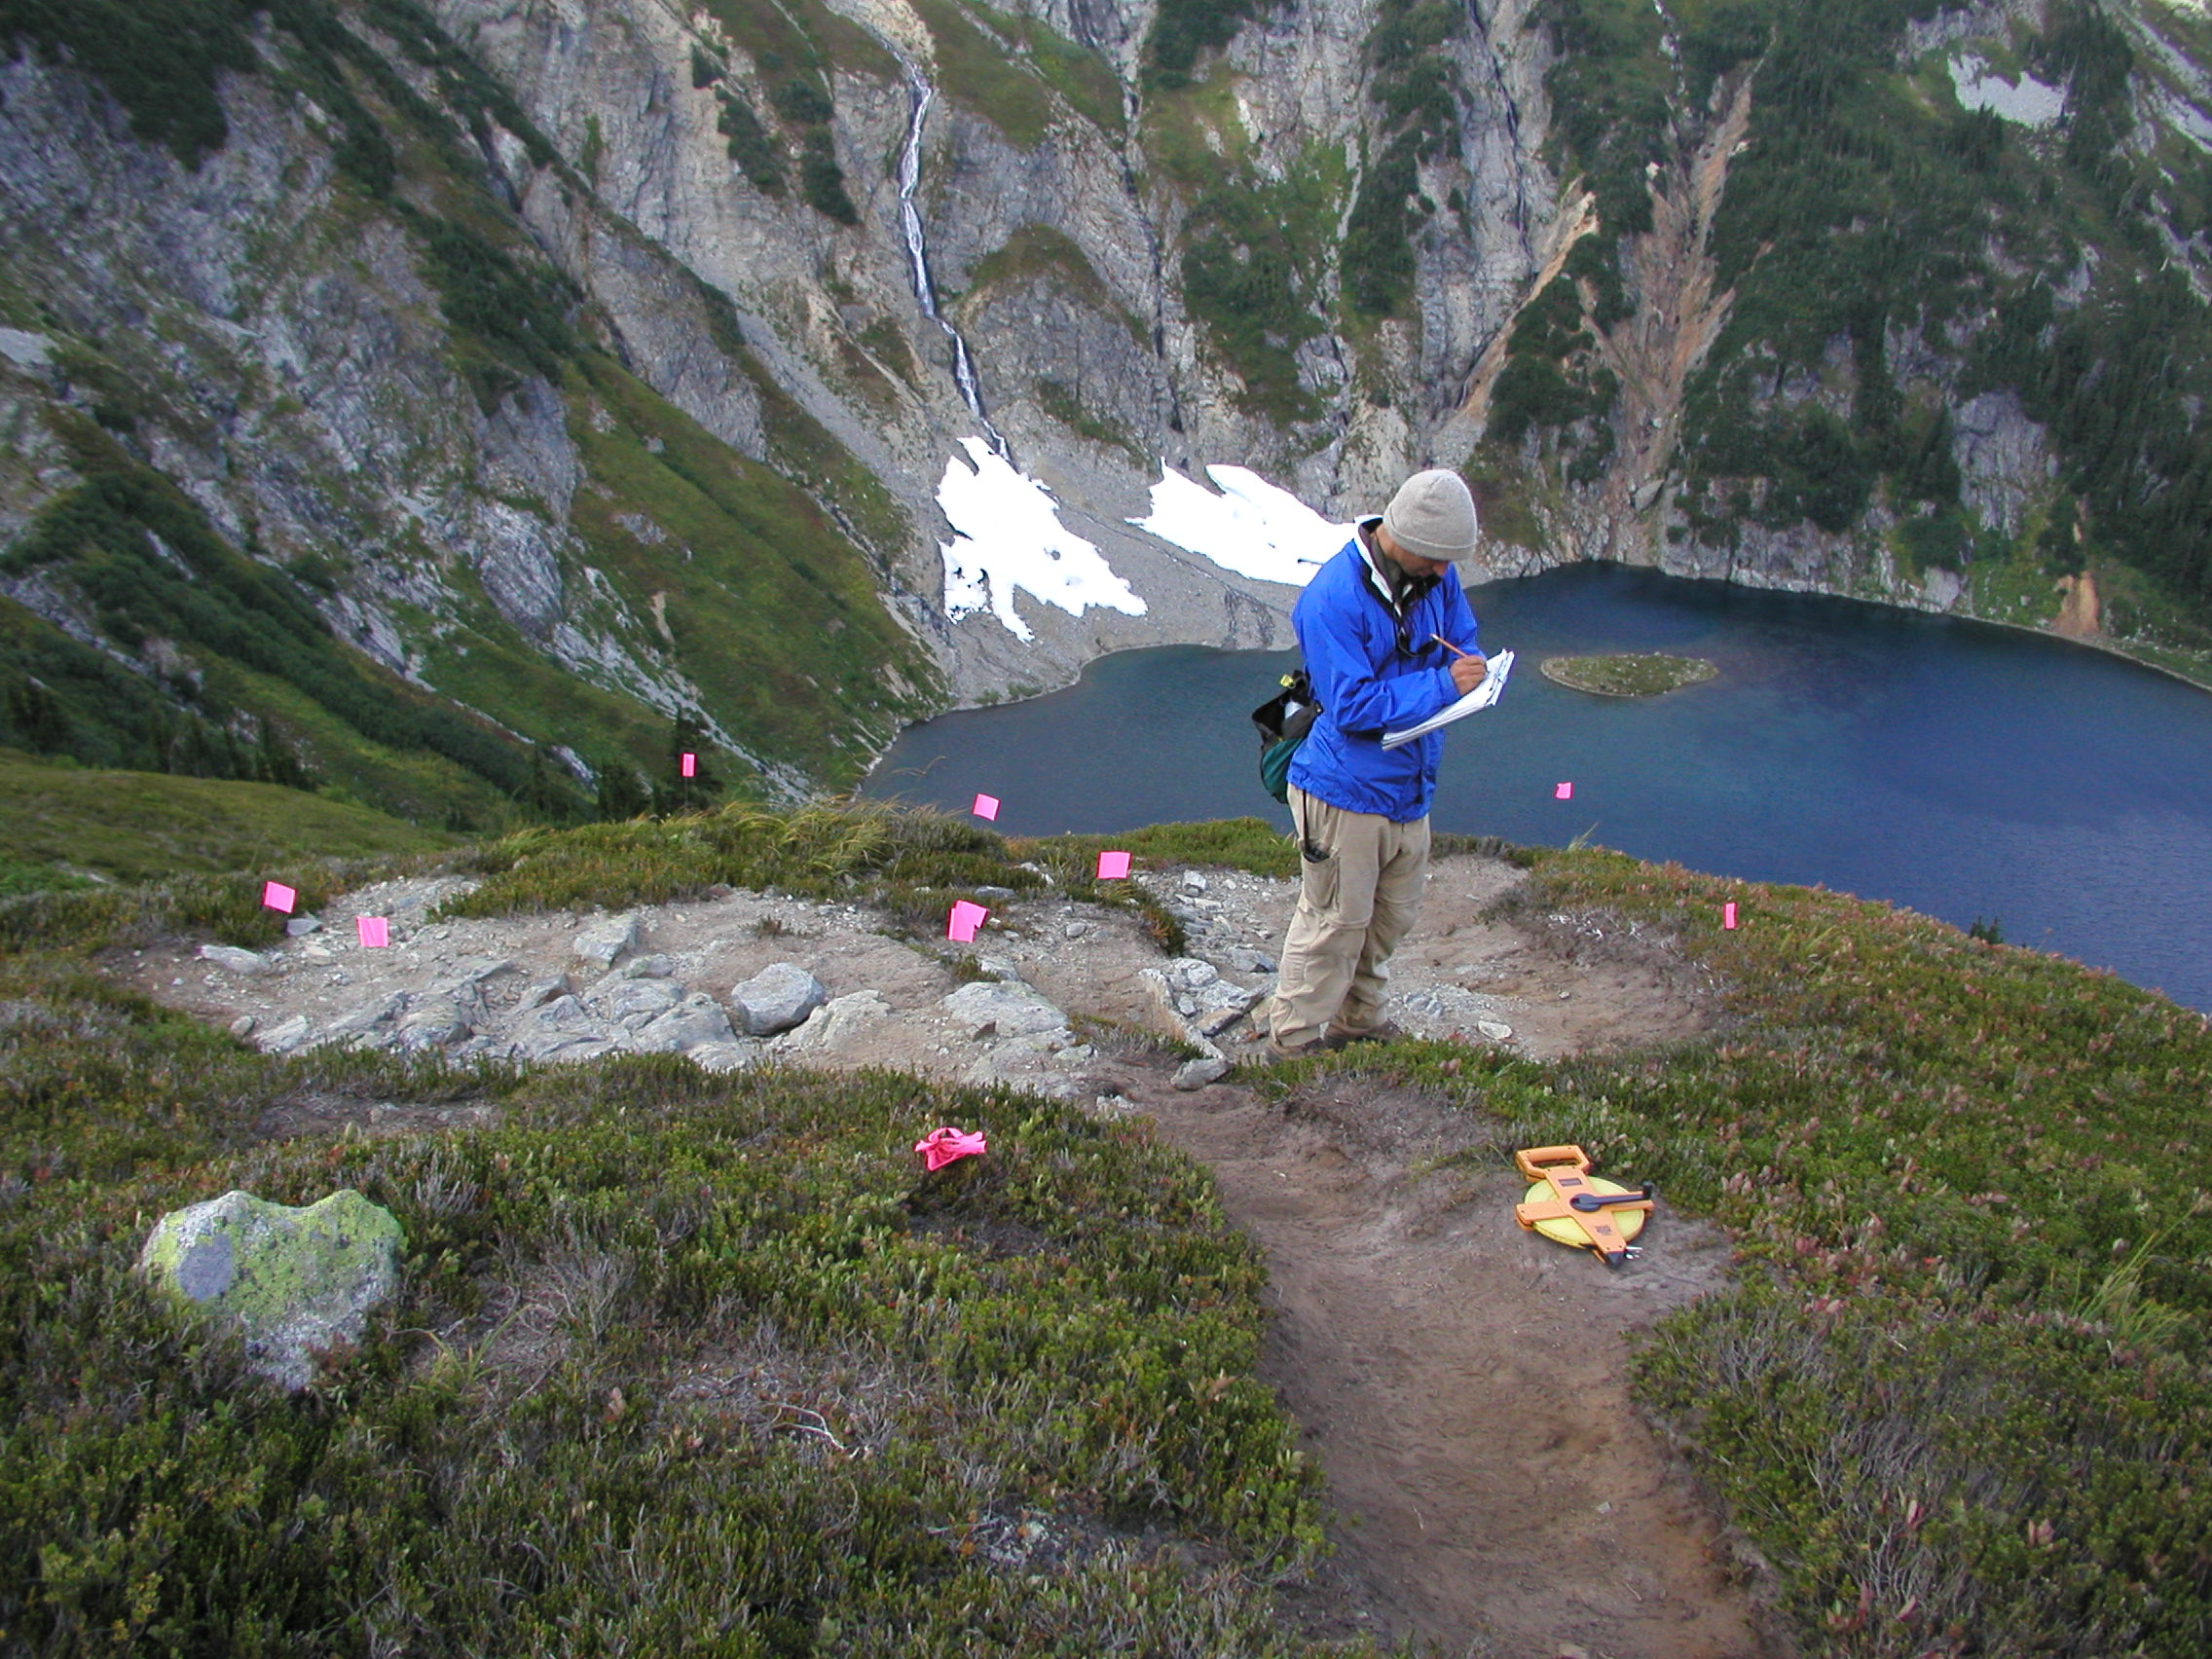 Mapping transects at doubtful lake